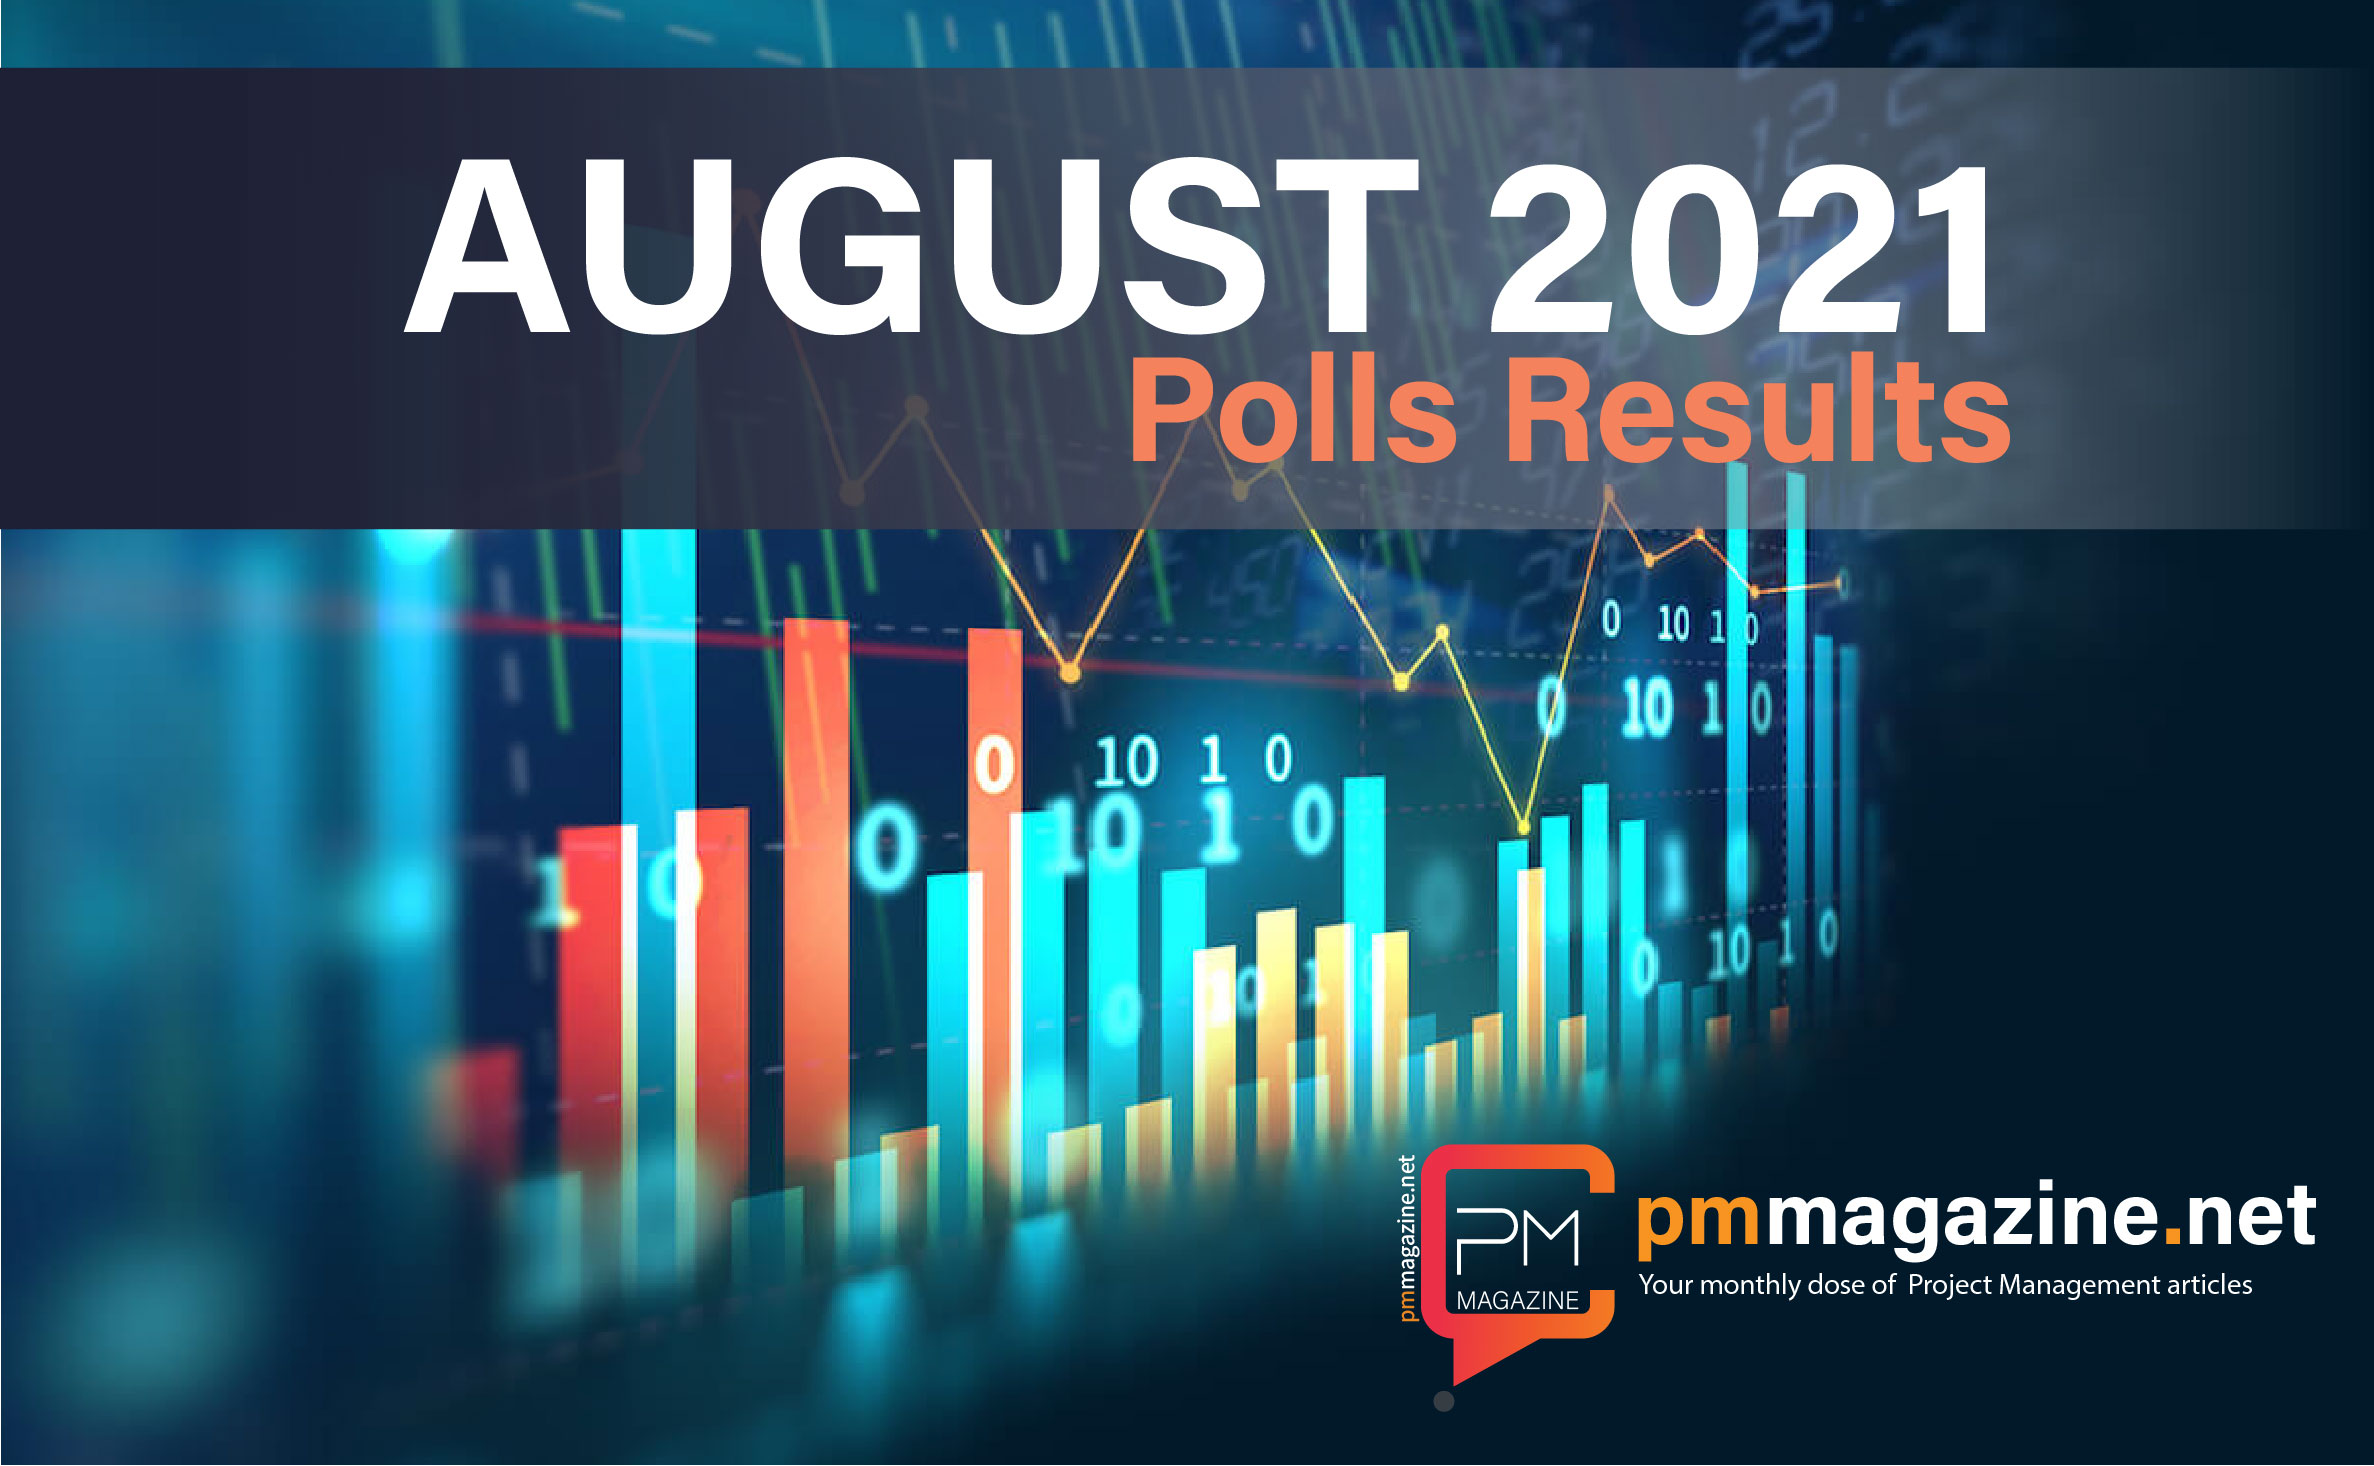 Polls and more